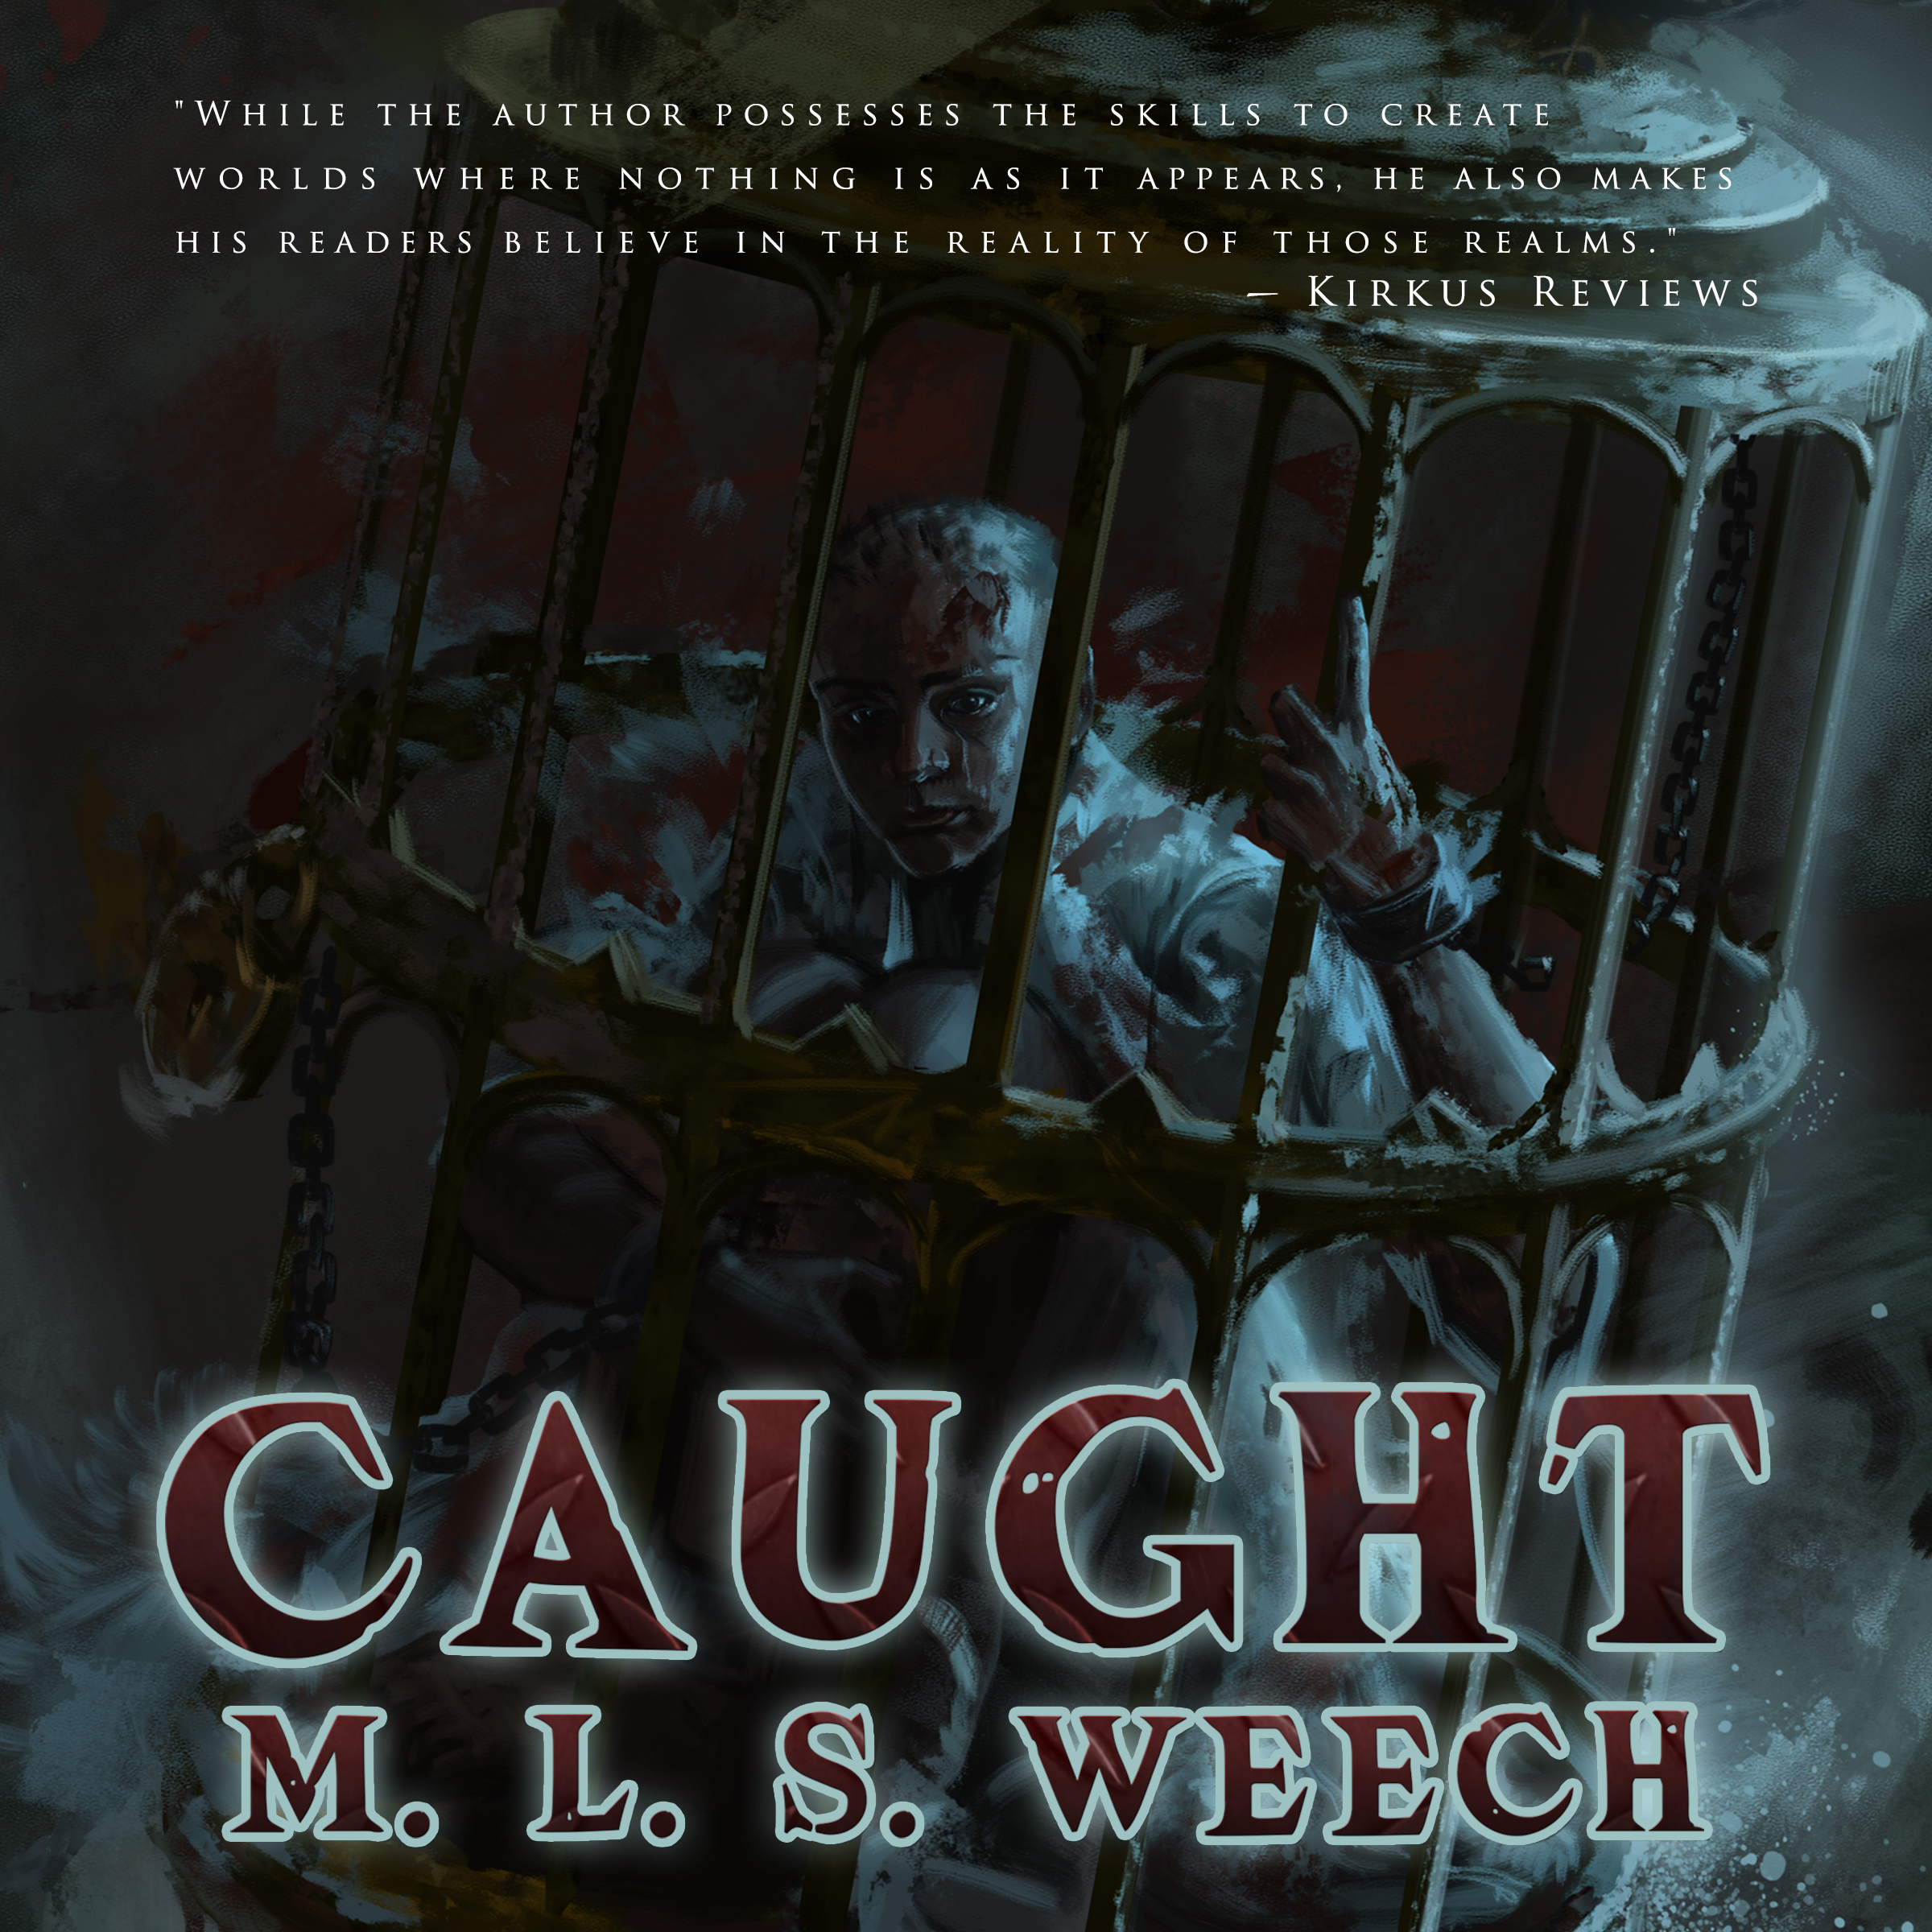 Caught_ACX_Cover